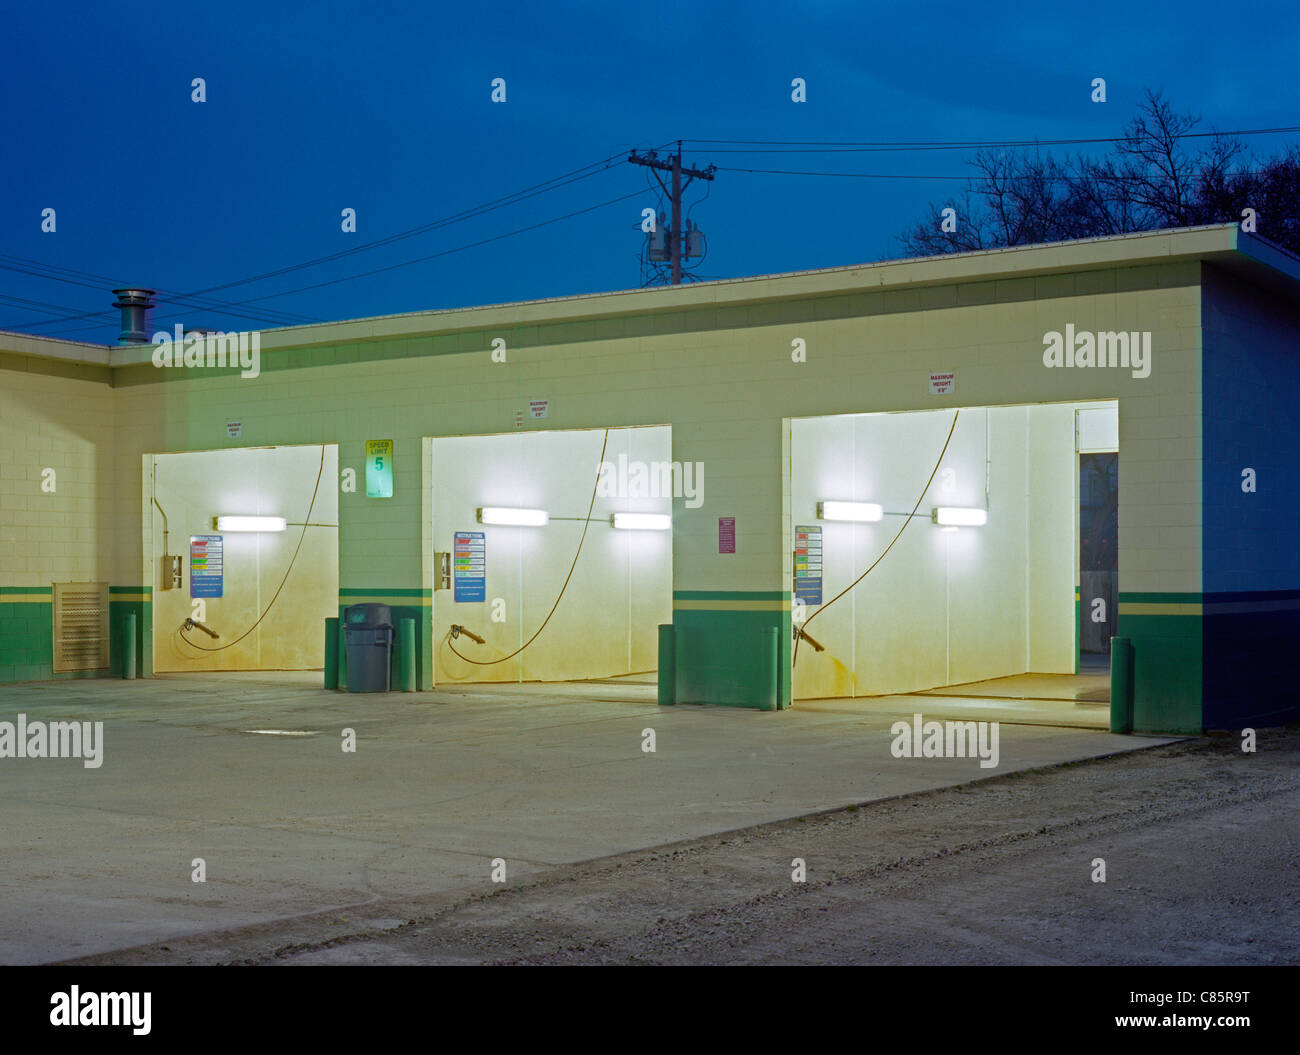 car wash dawn stock photos & car wash dawn stock images - alamy